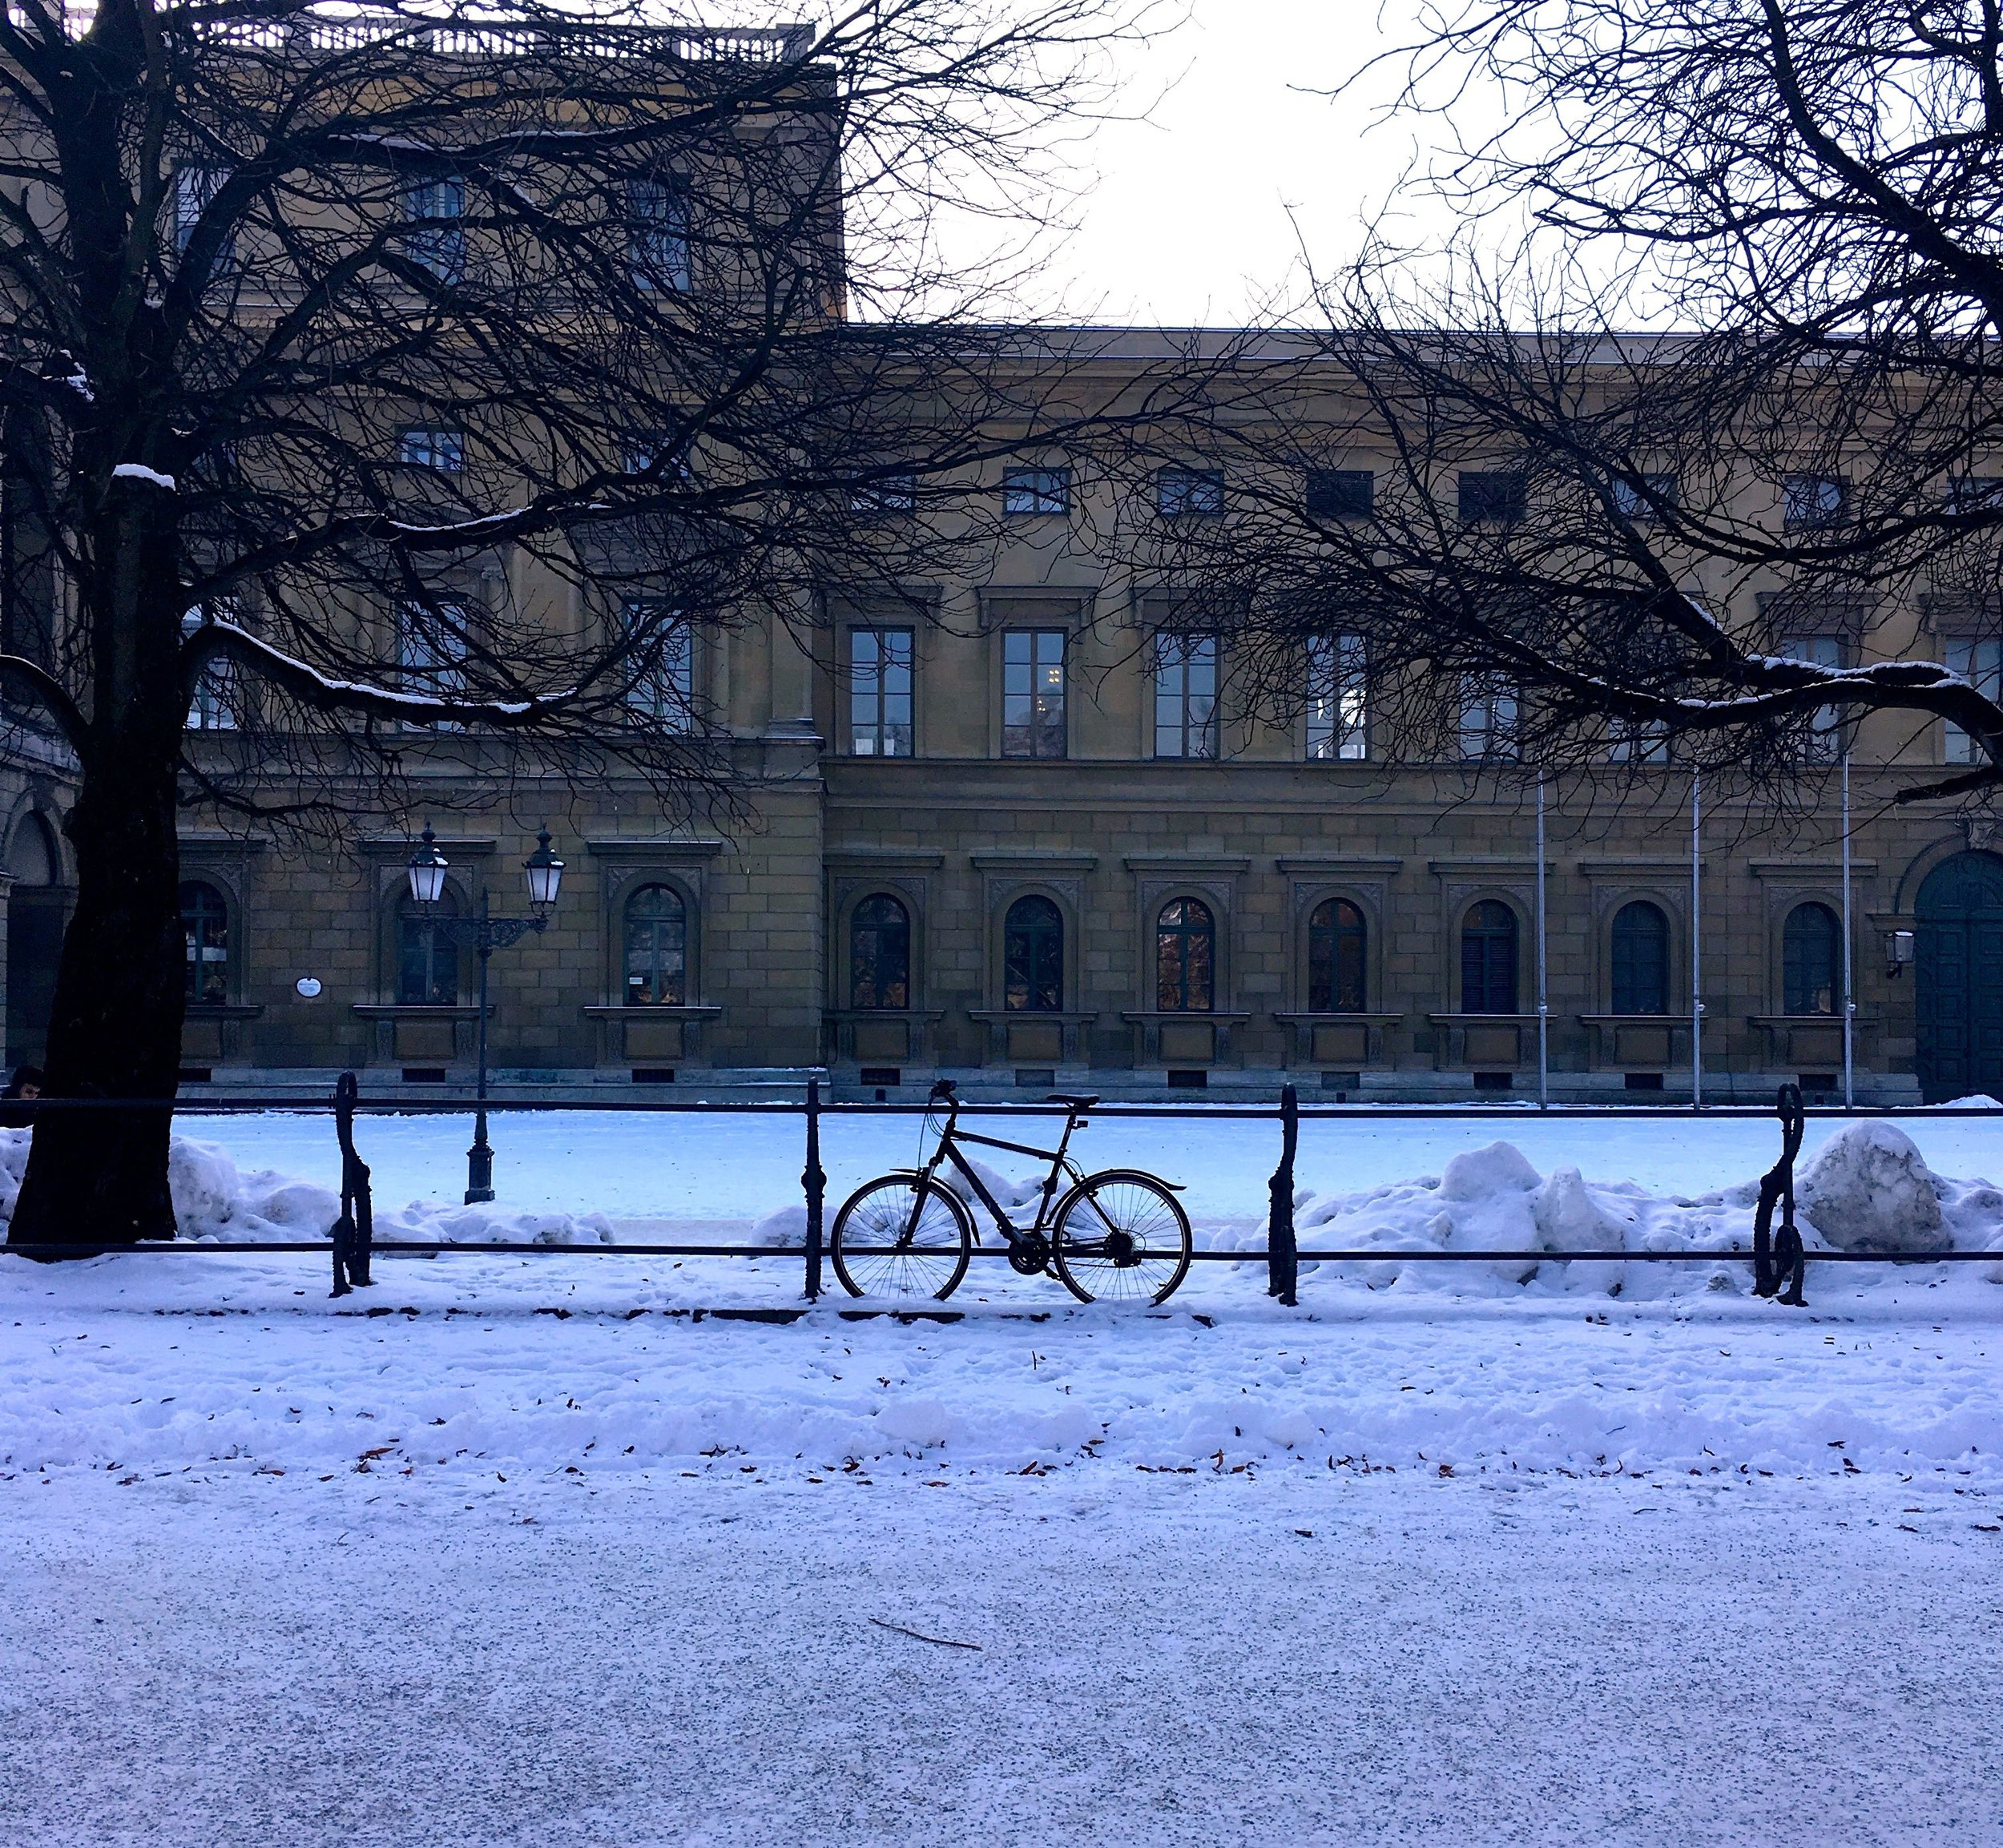 A bicycle parked alongside the railings in Munich's Hofgarten